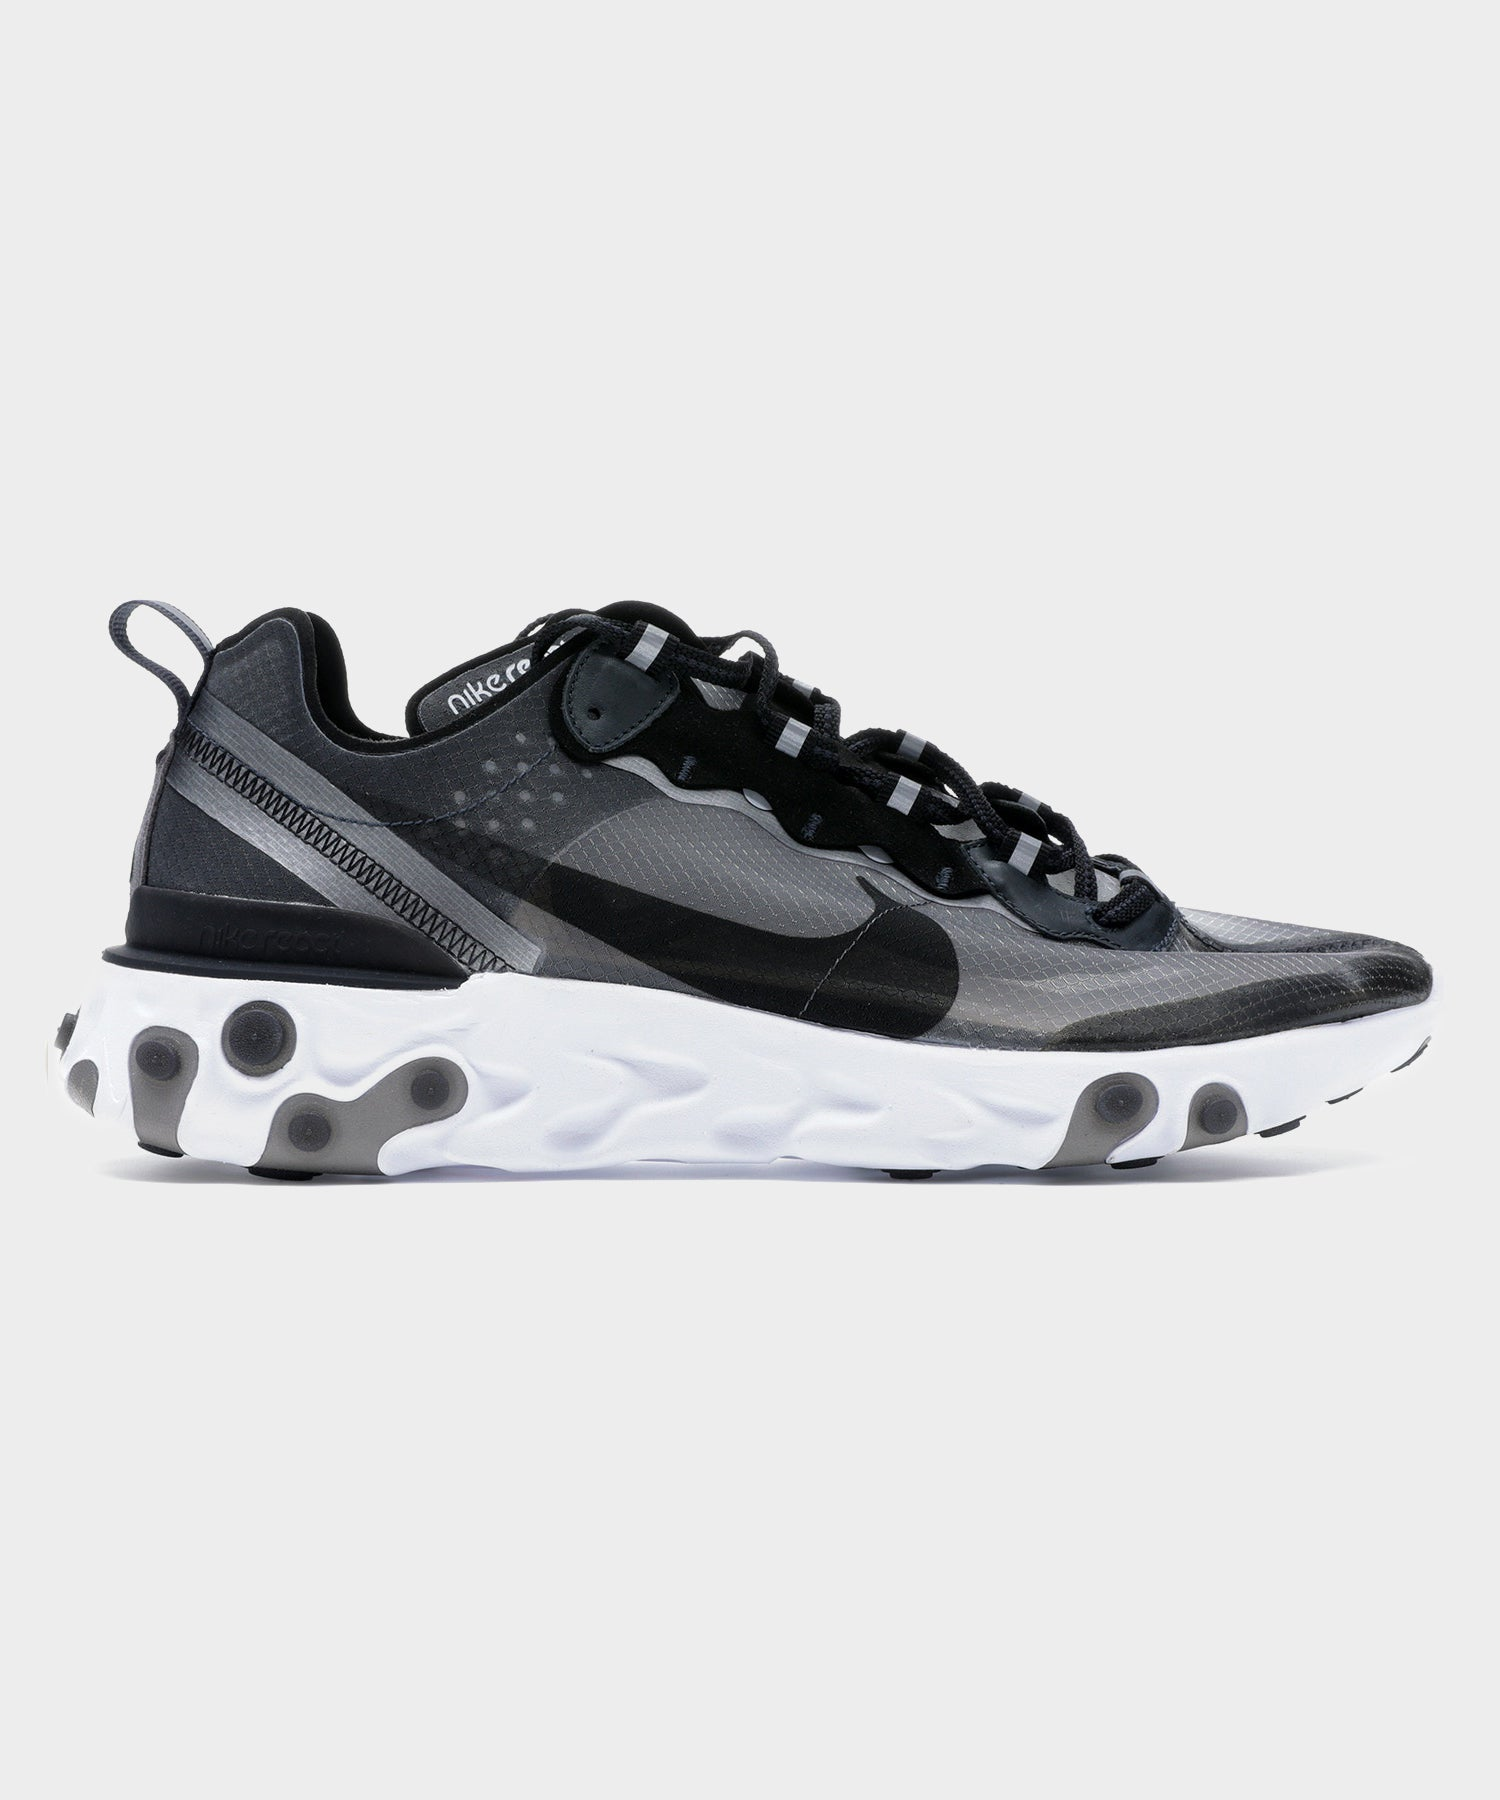 Nike React Element 87 in Anthracite